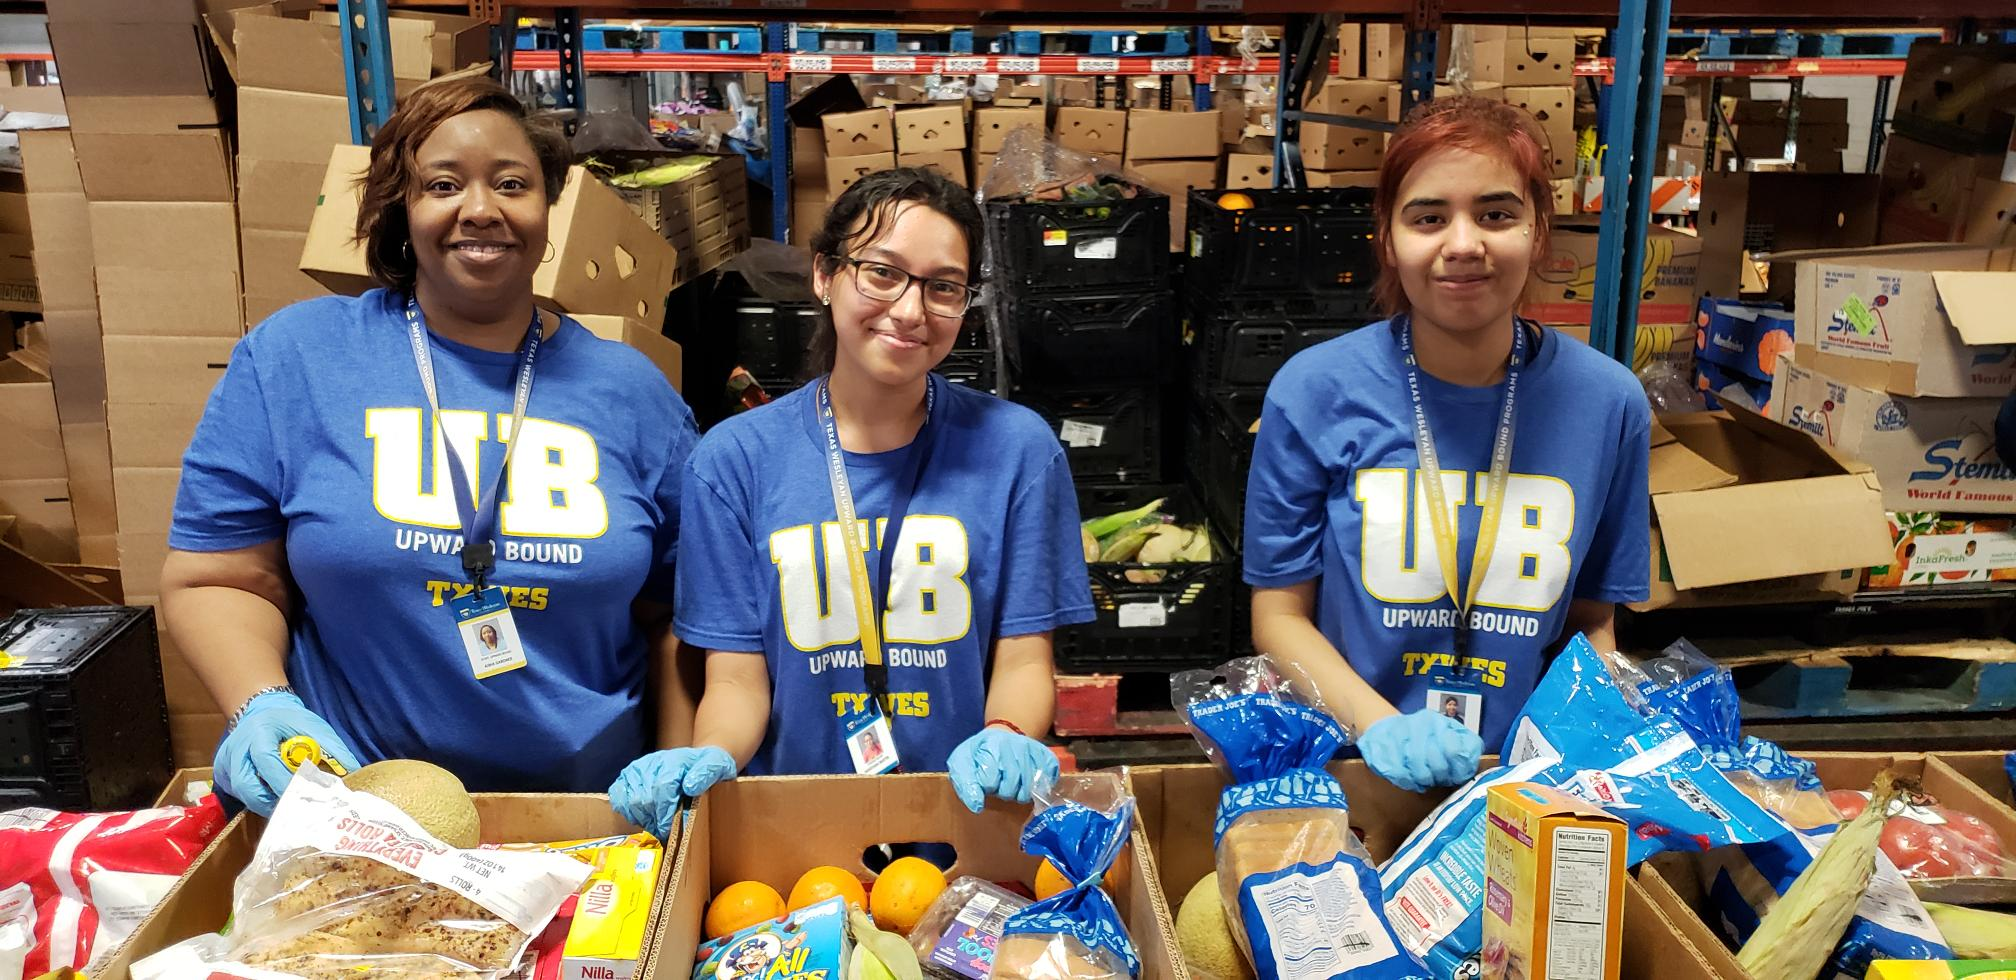 Volunteer Profile: Texas Wesleyan University's Upward Bound